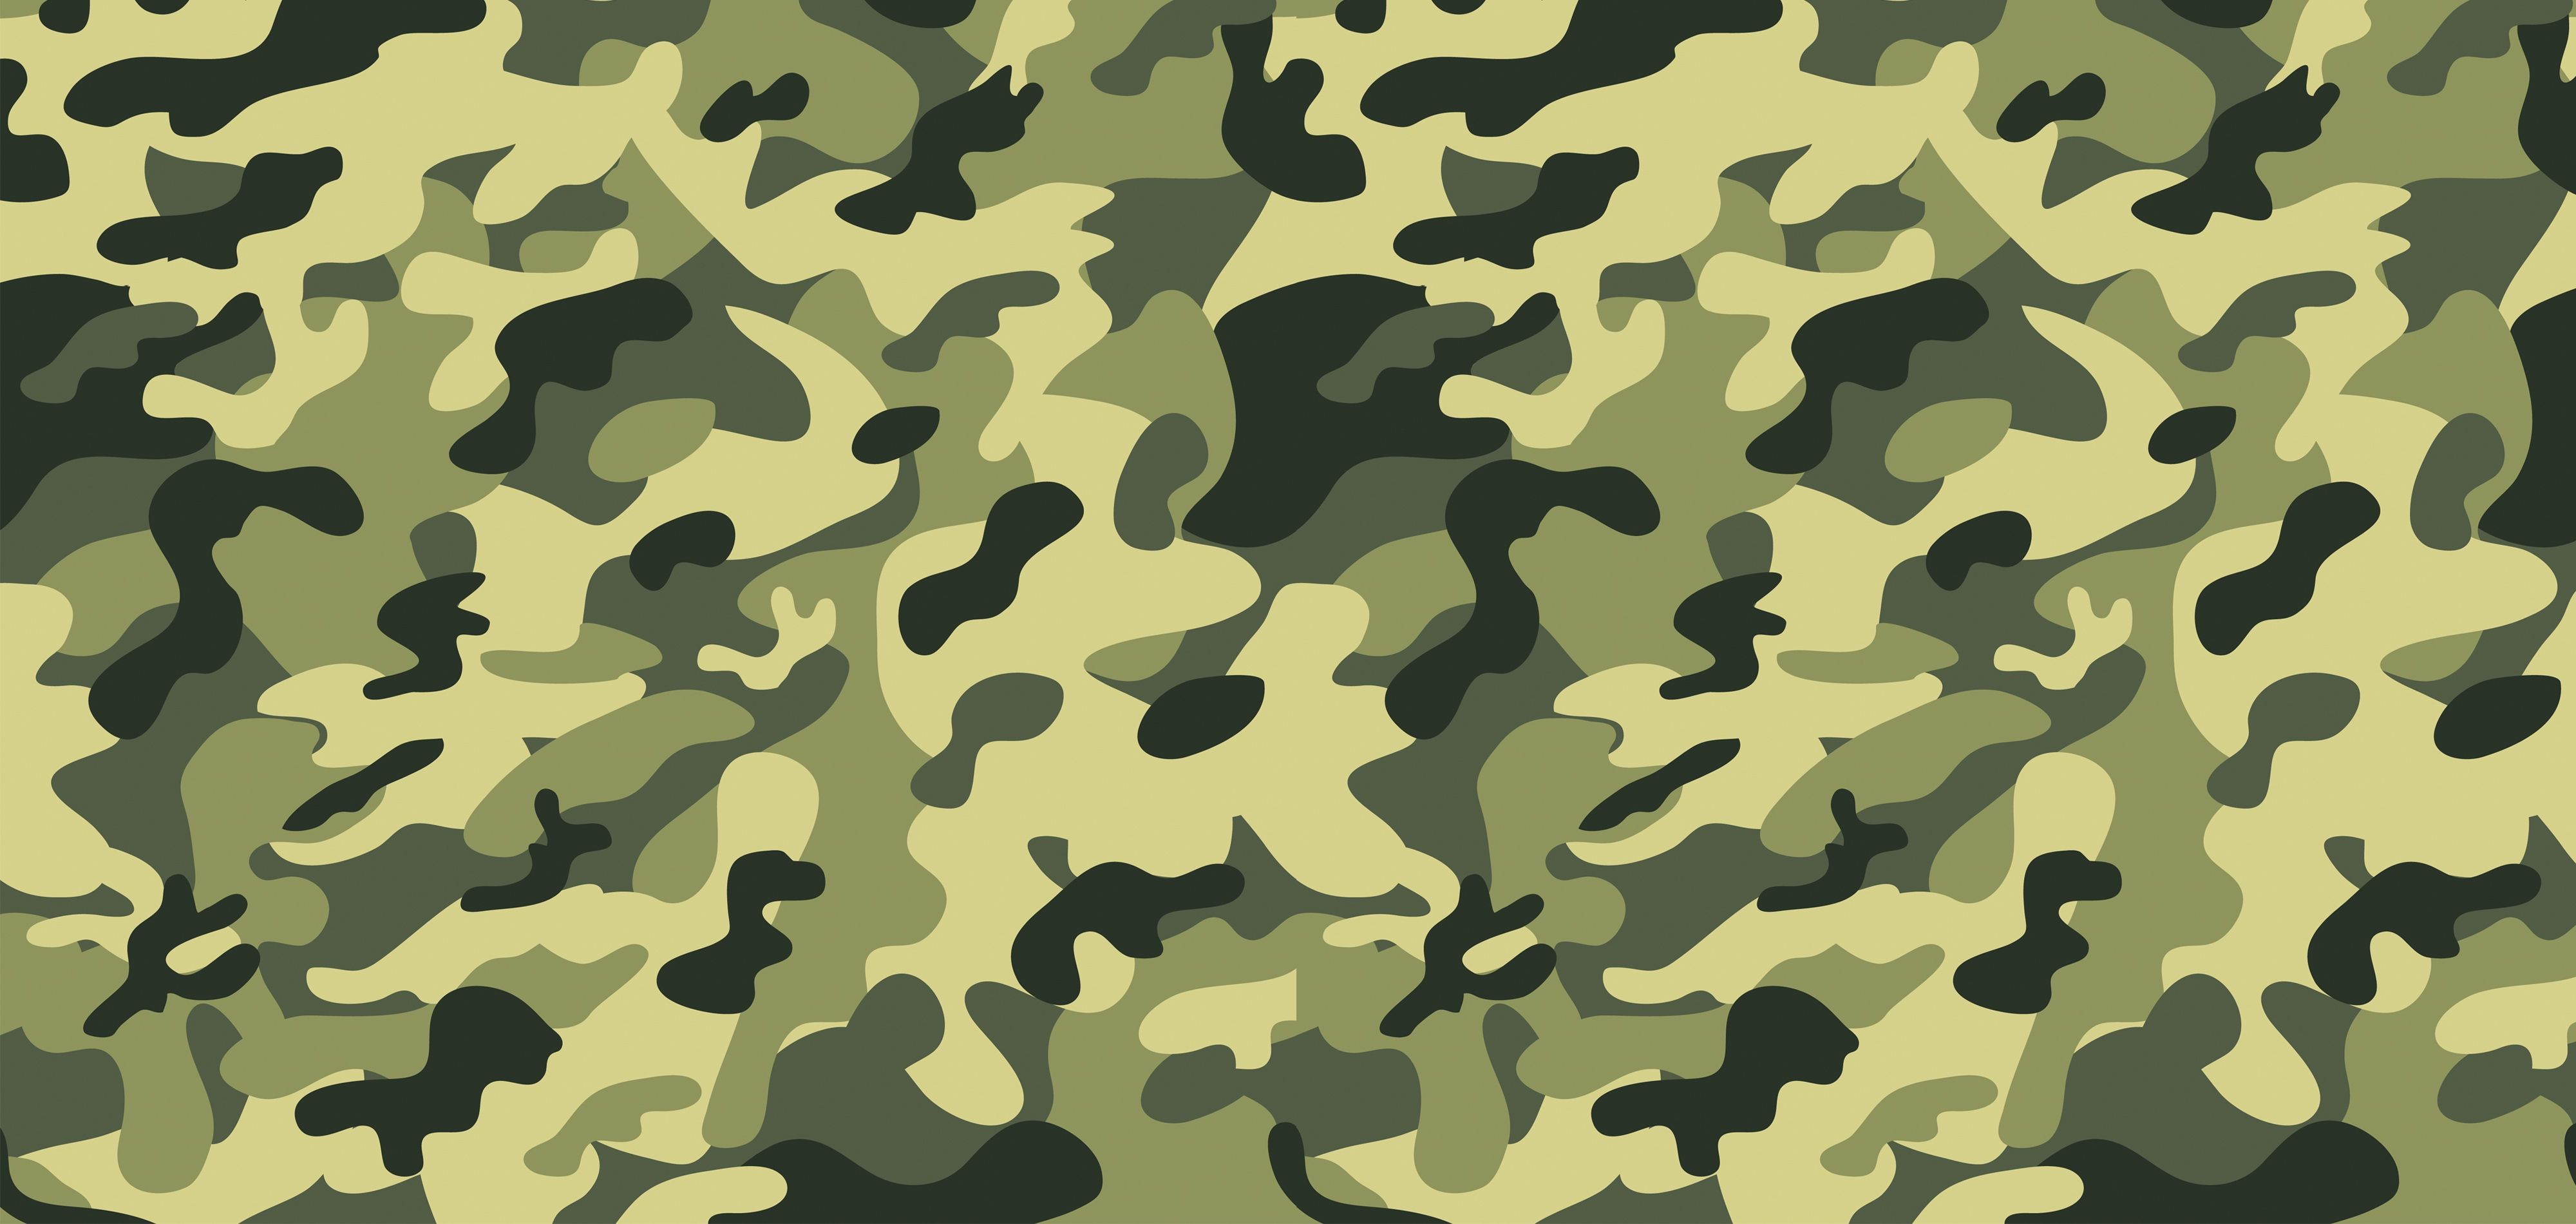 Download wallpaper texture surface military color hd background